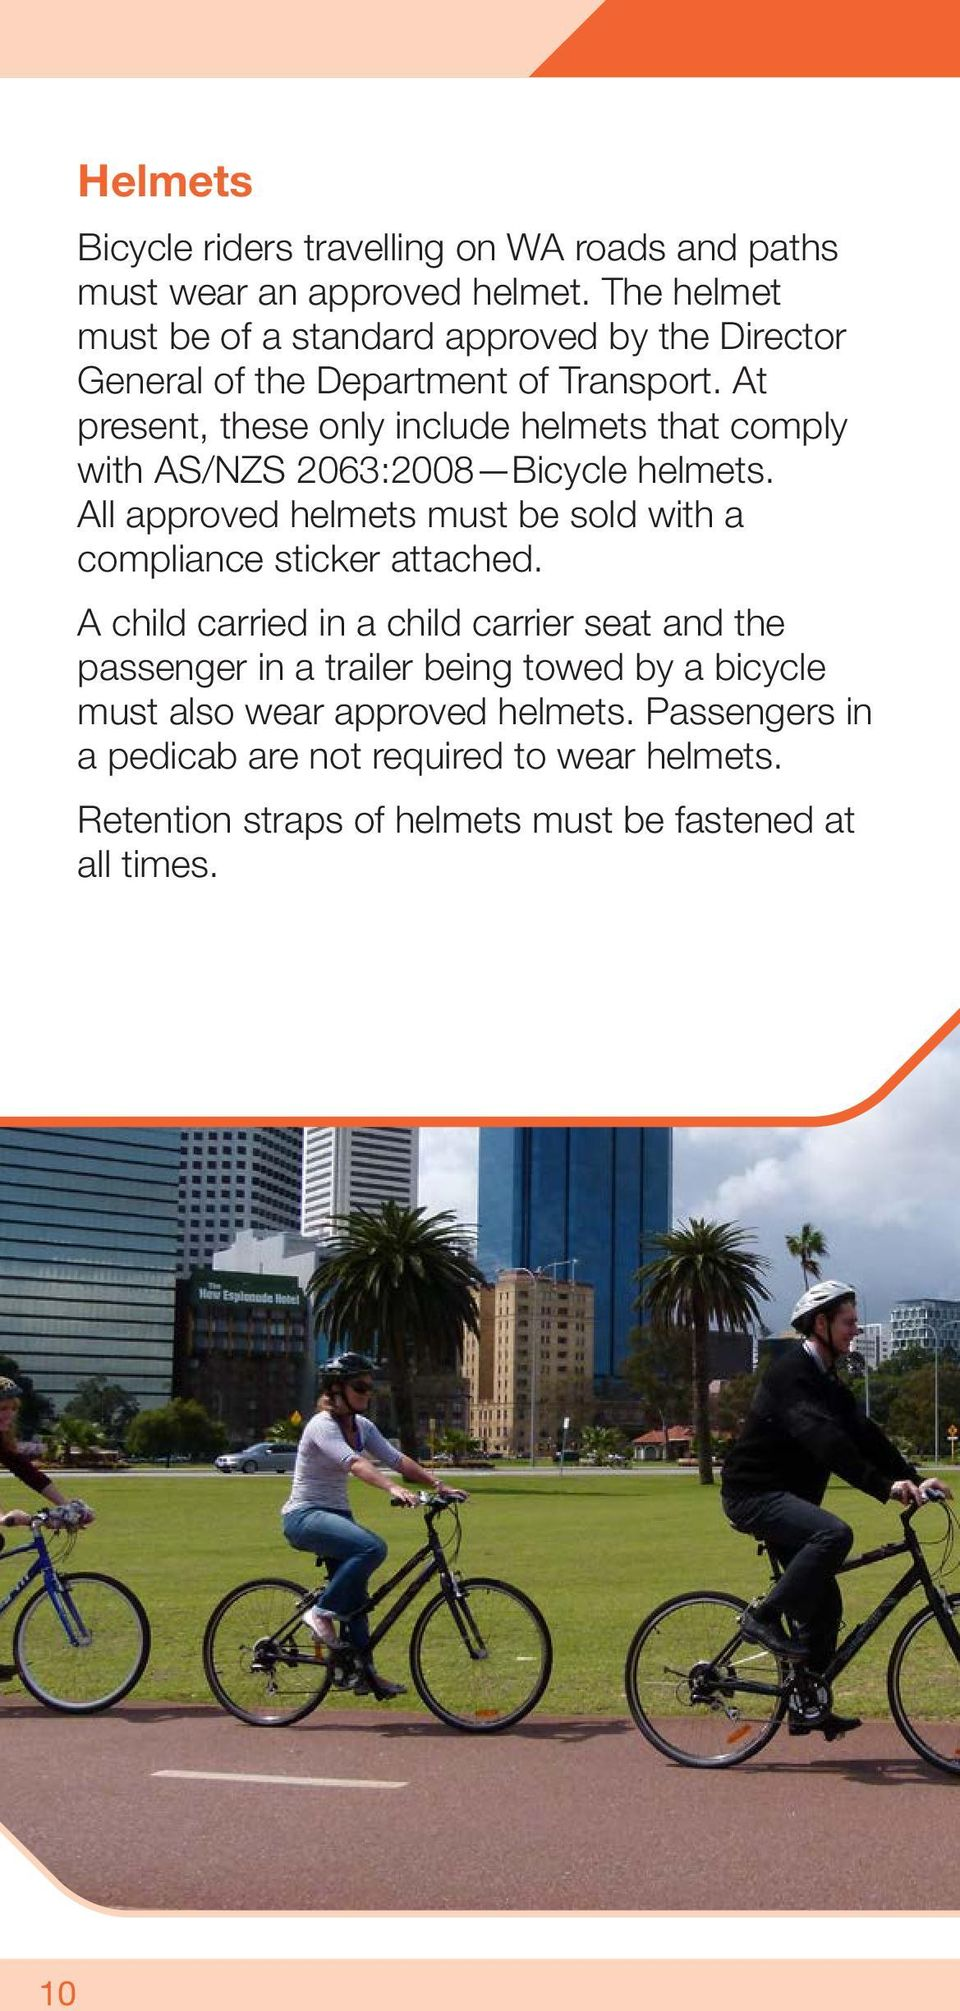 At present, these only include helmets that comply with AS/NZS 2063:2008 Bicycle helmets.